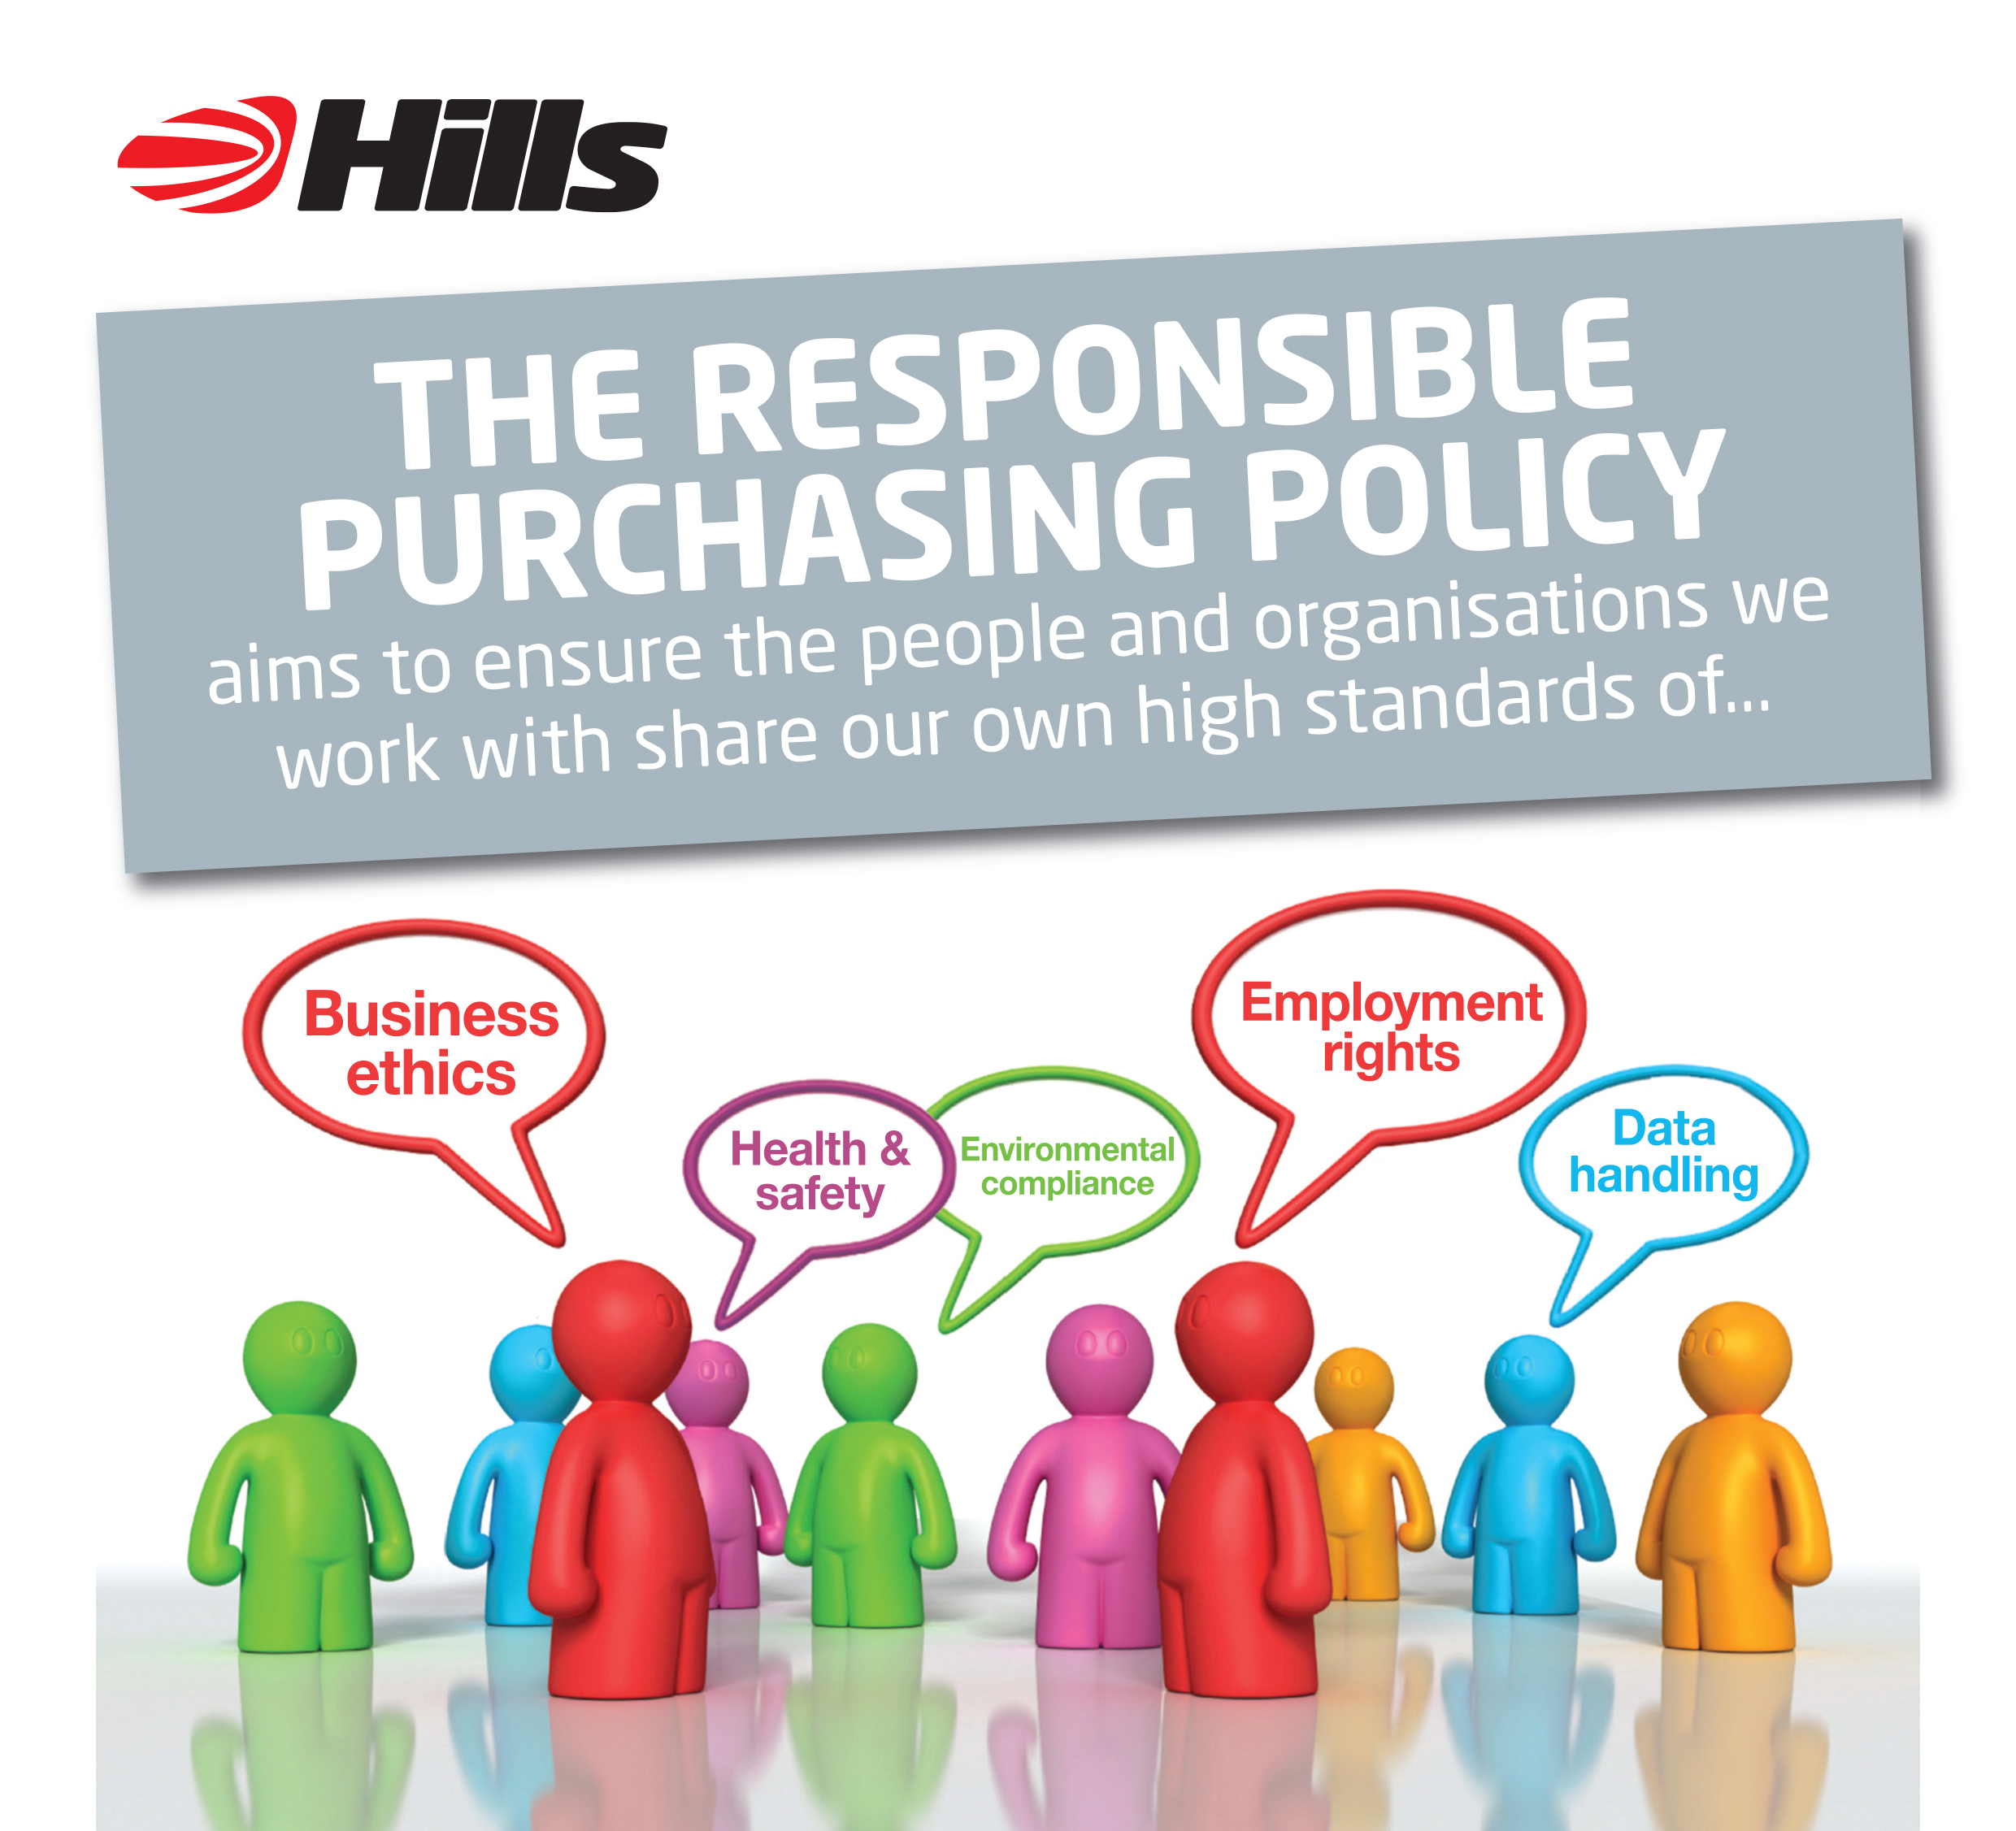 Hills Group adopts responsible policy in response to Modern Slavery Act